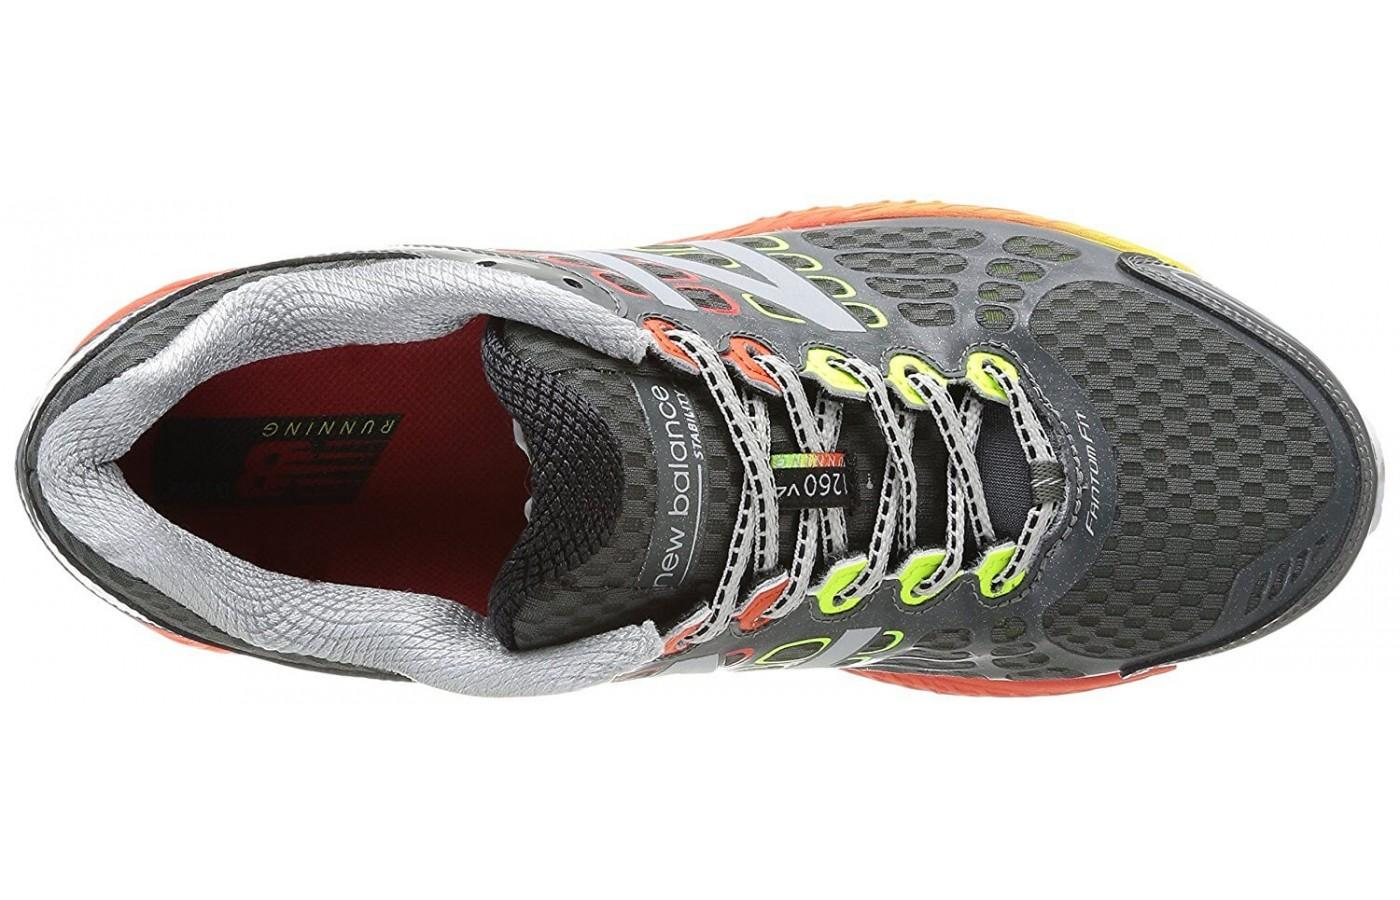 New Balance 1260v4 lacing system and breathable upper